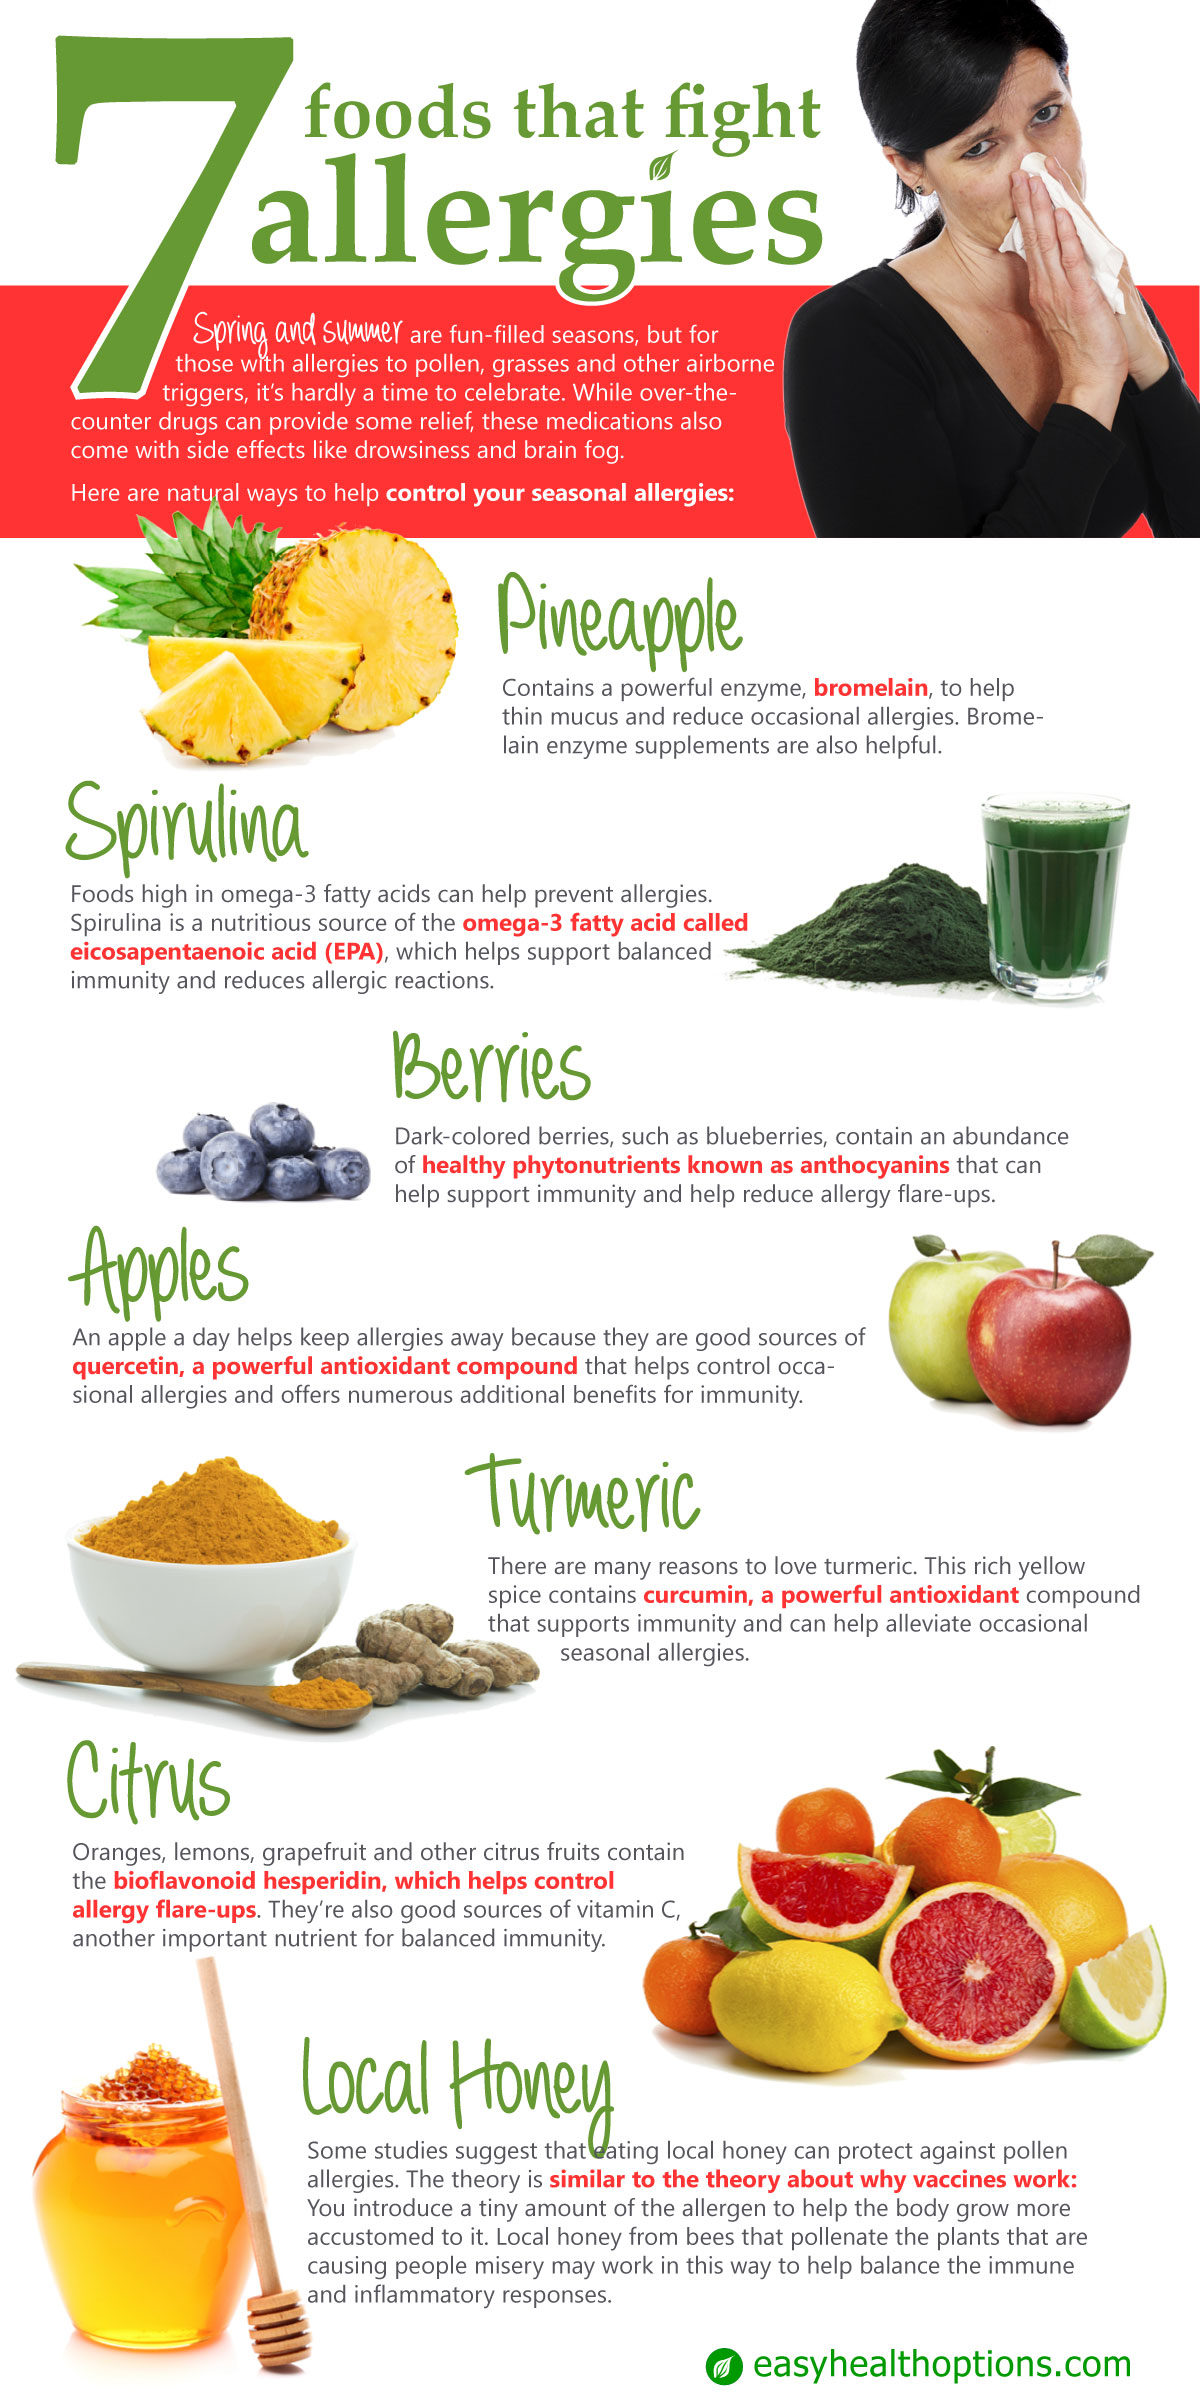 7 foods that fight allergies [infographic] | health maximizer